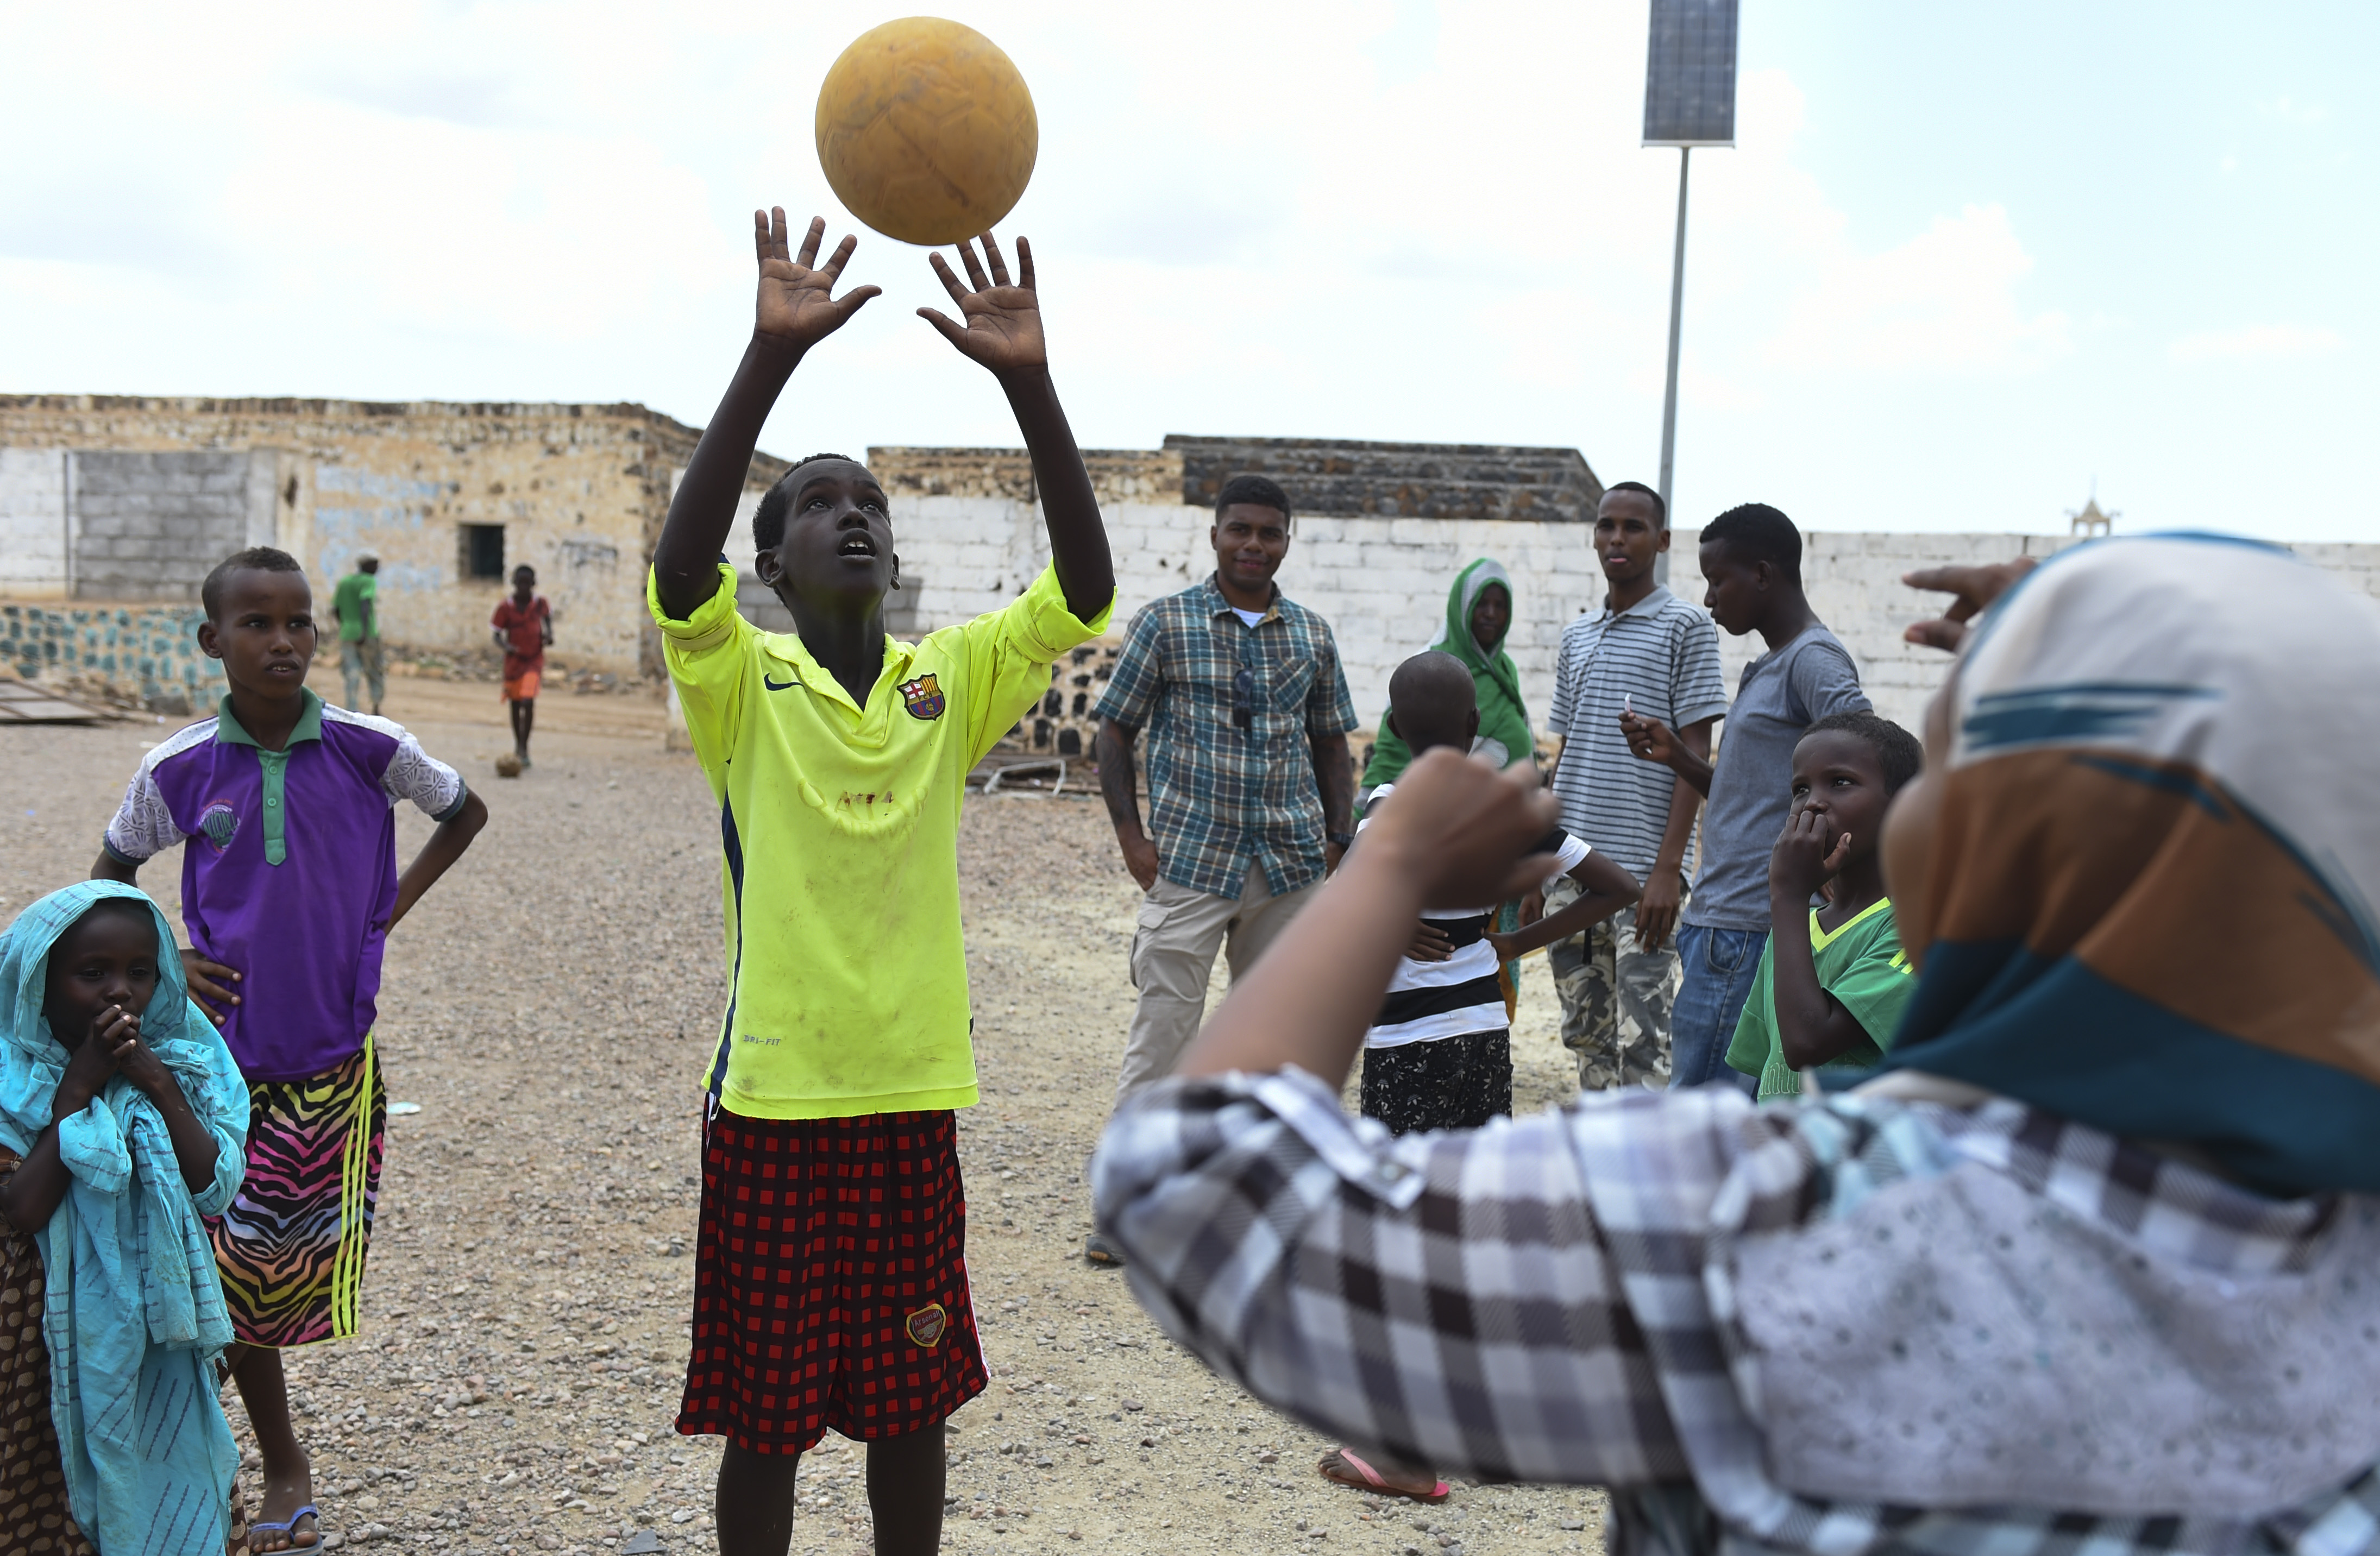 A child tosses a ball with Fatouma Omar Guedi, a language interpreter, in the village of Holhol, Djibouti, May 18, 2017. Language interpreters are essential to the success of civil affairs operations and act as liaisons between the military personnel and local key leaders in the Horn-of-Africa nations. (U.S. Air Force Photo by Eboni Prince)